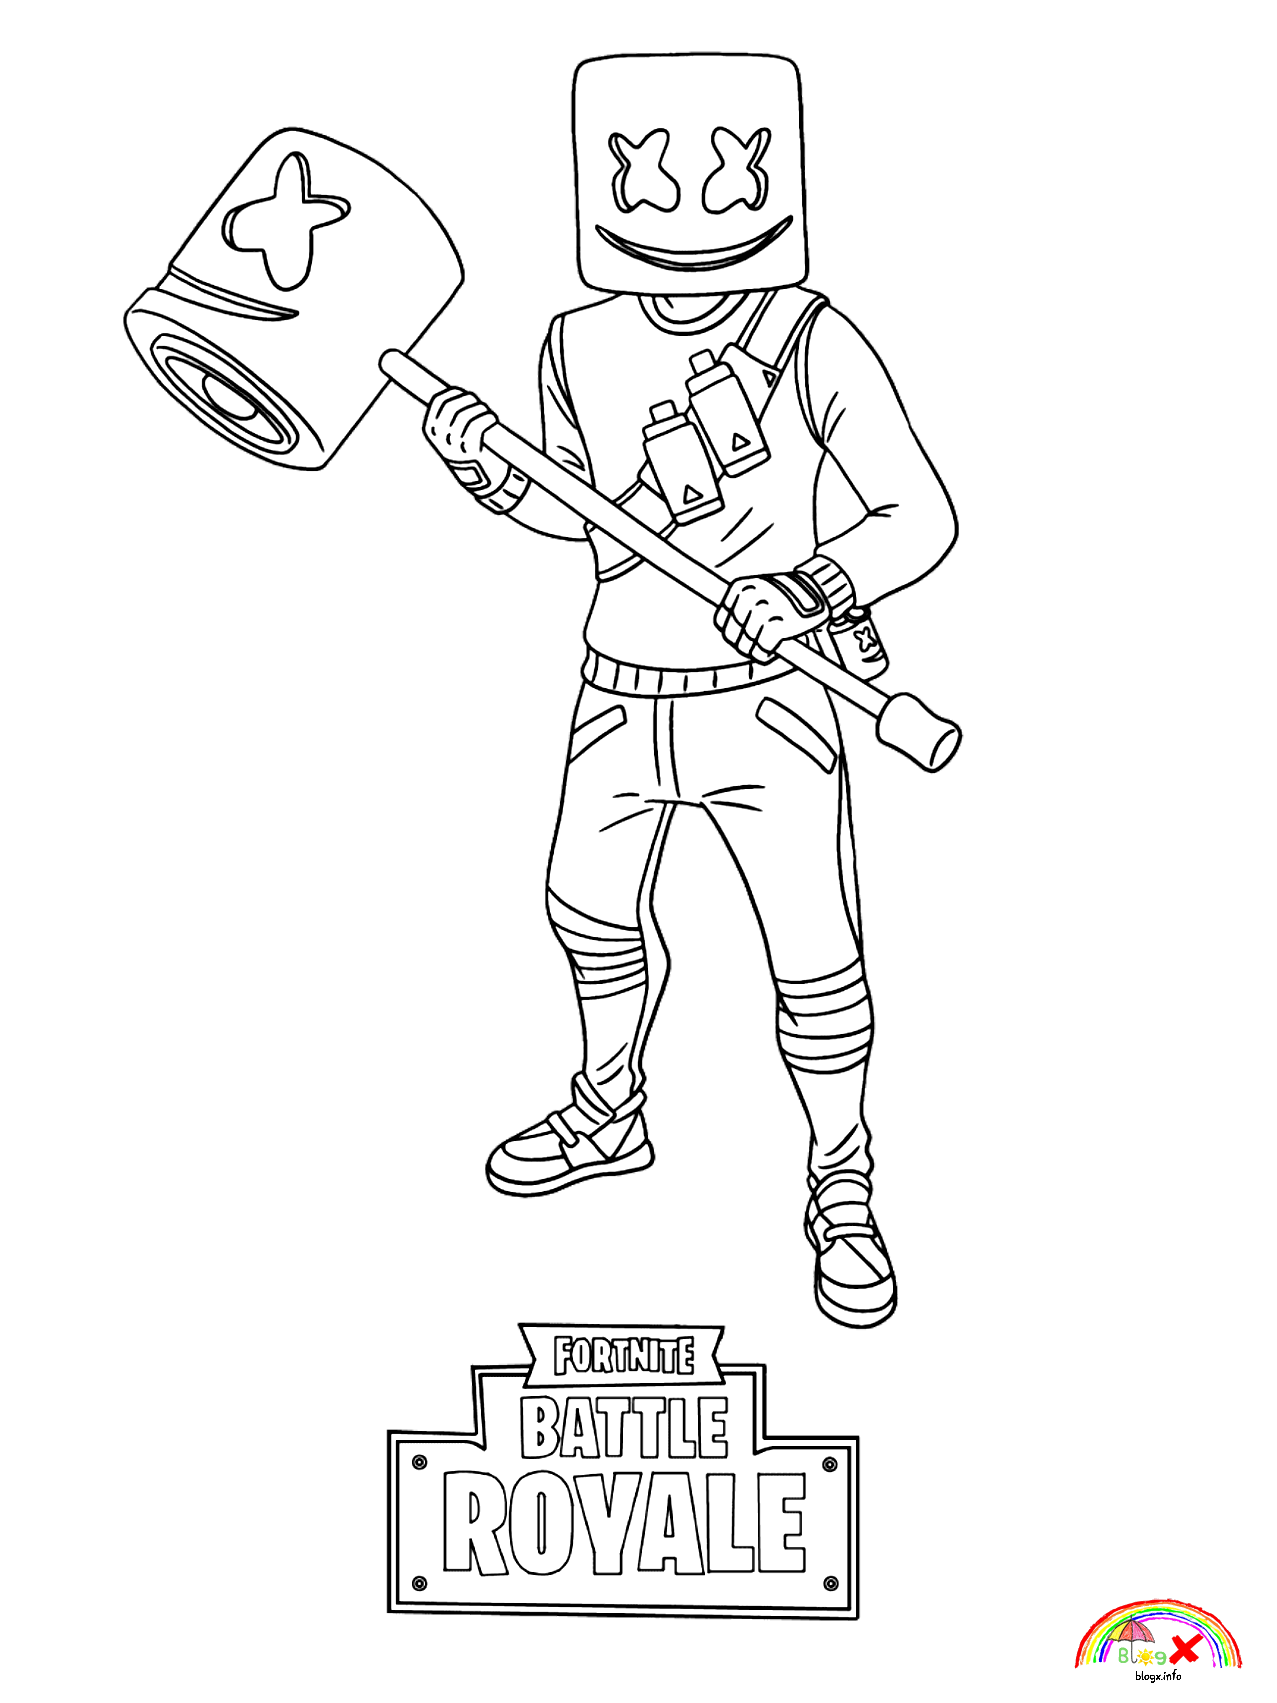 Marshmello Fortnite Coloring Page For Kids Blogx Coloring Pages Allow Kids To Accompany Their In 2020 Coloring Pages For Boys Coloring Pages Coloring Pages For Kids